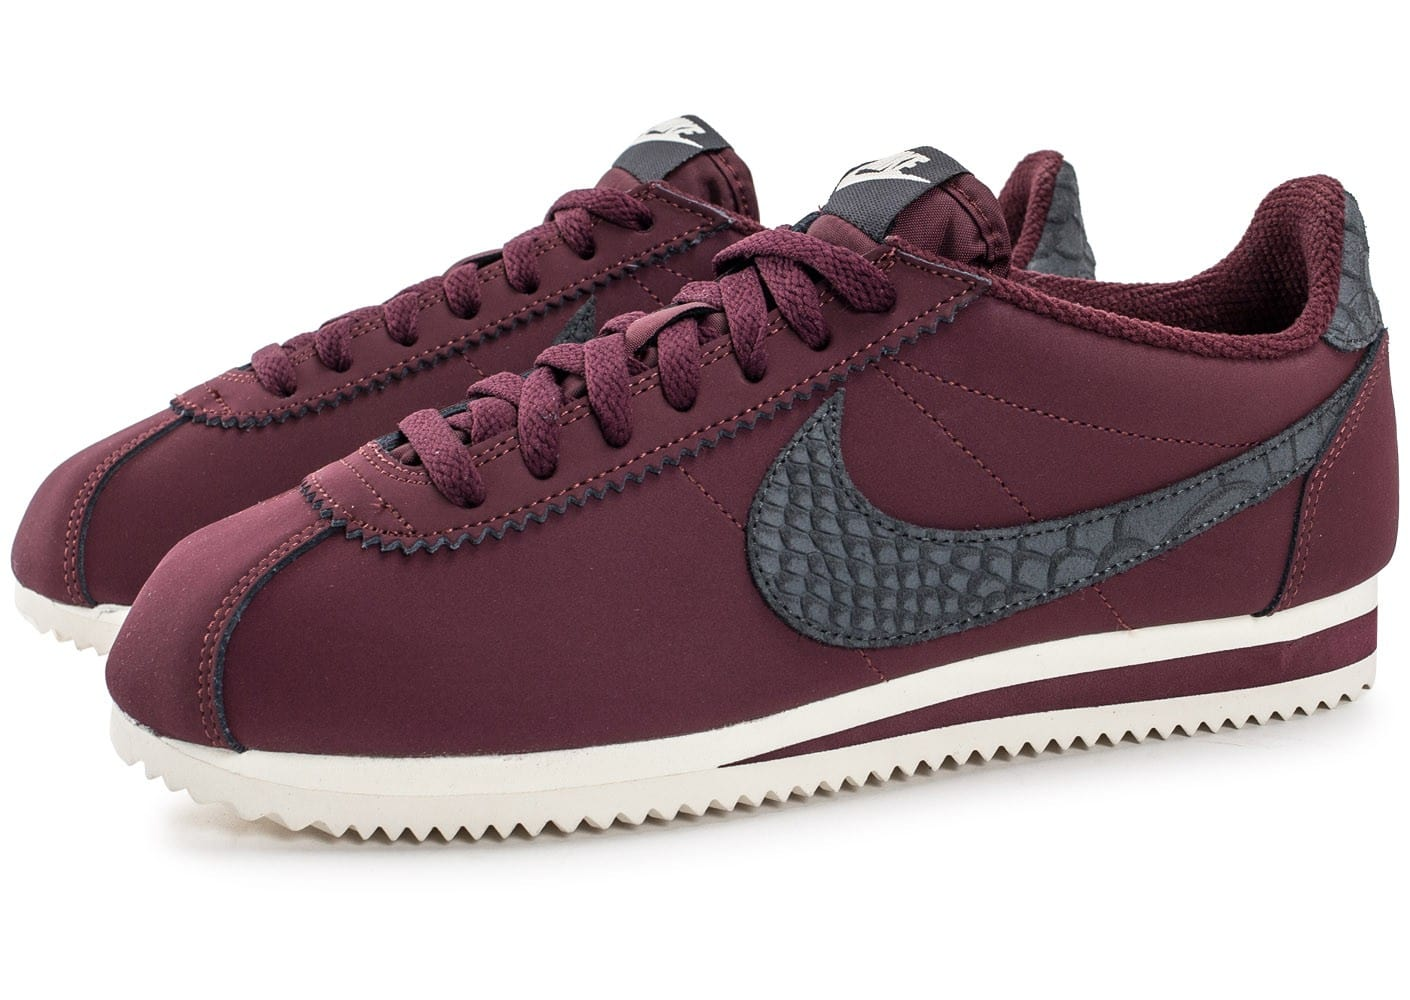 nike cortez femme bordeaux. Black Bedroom Furniture Sets. Home Design Ideas